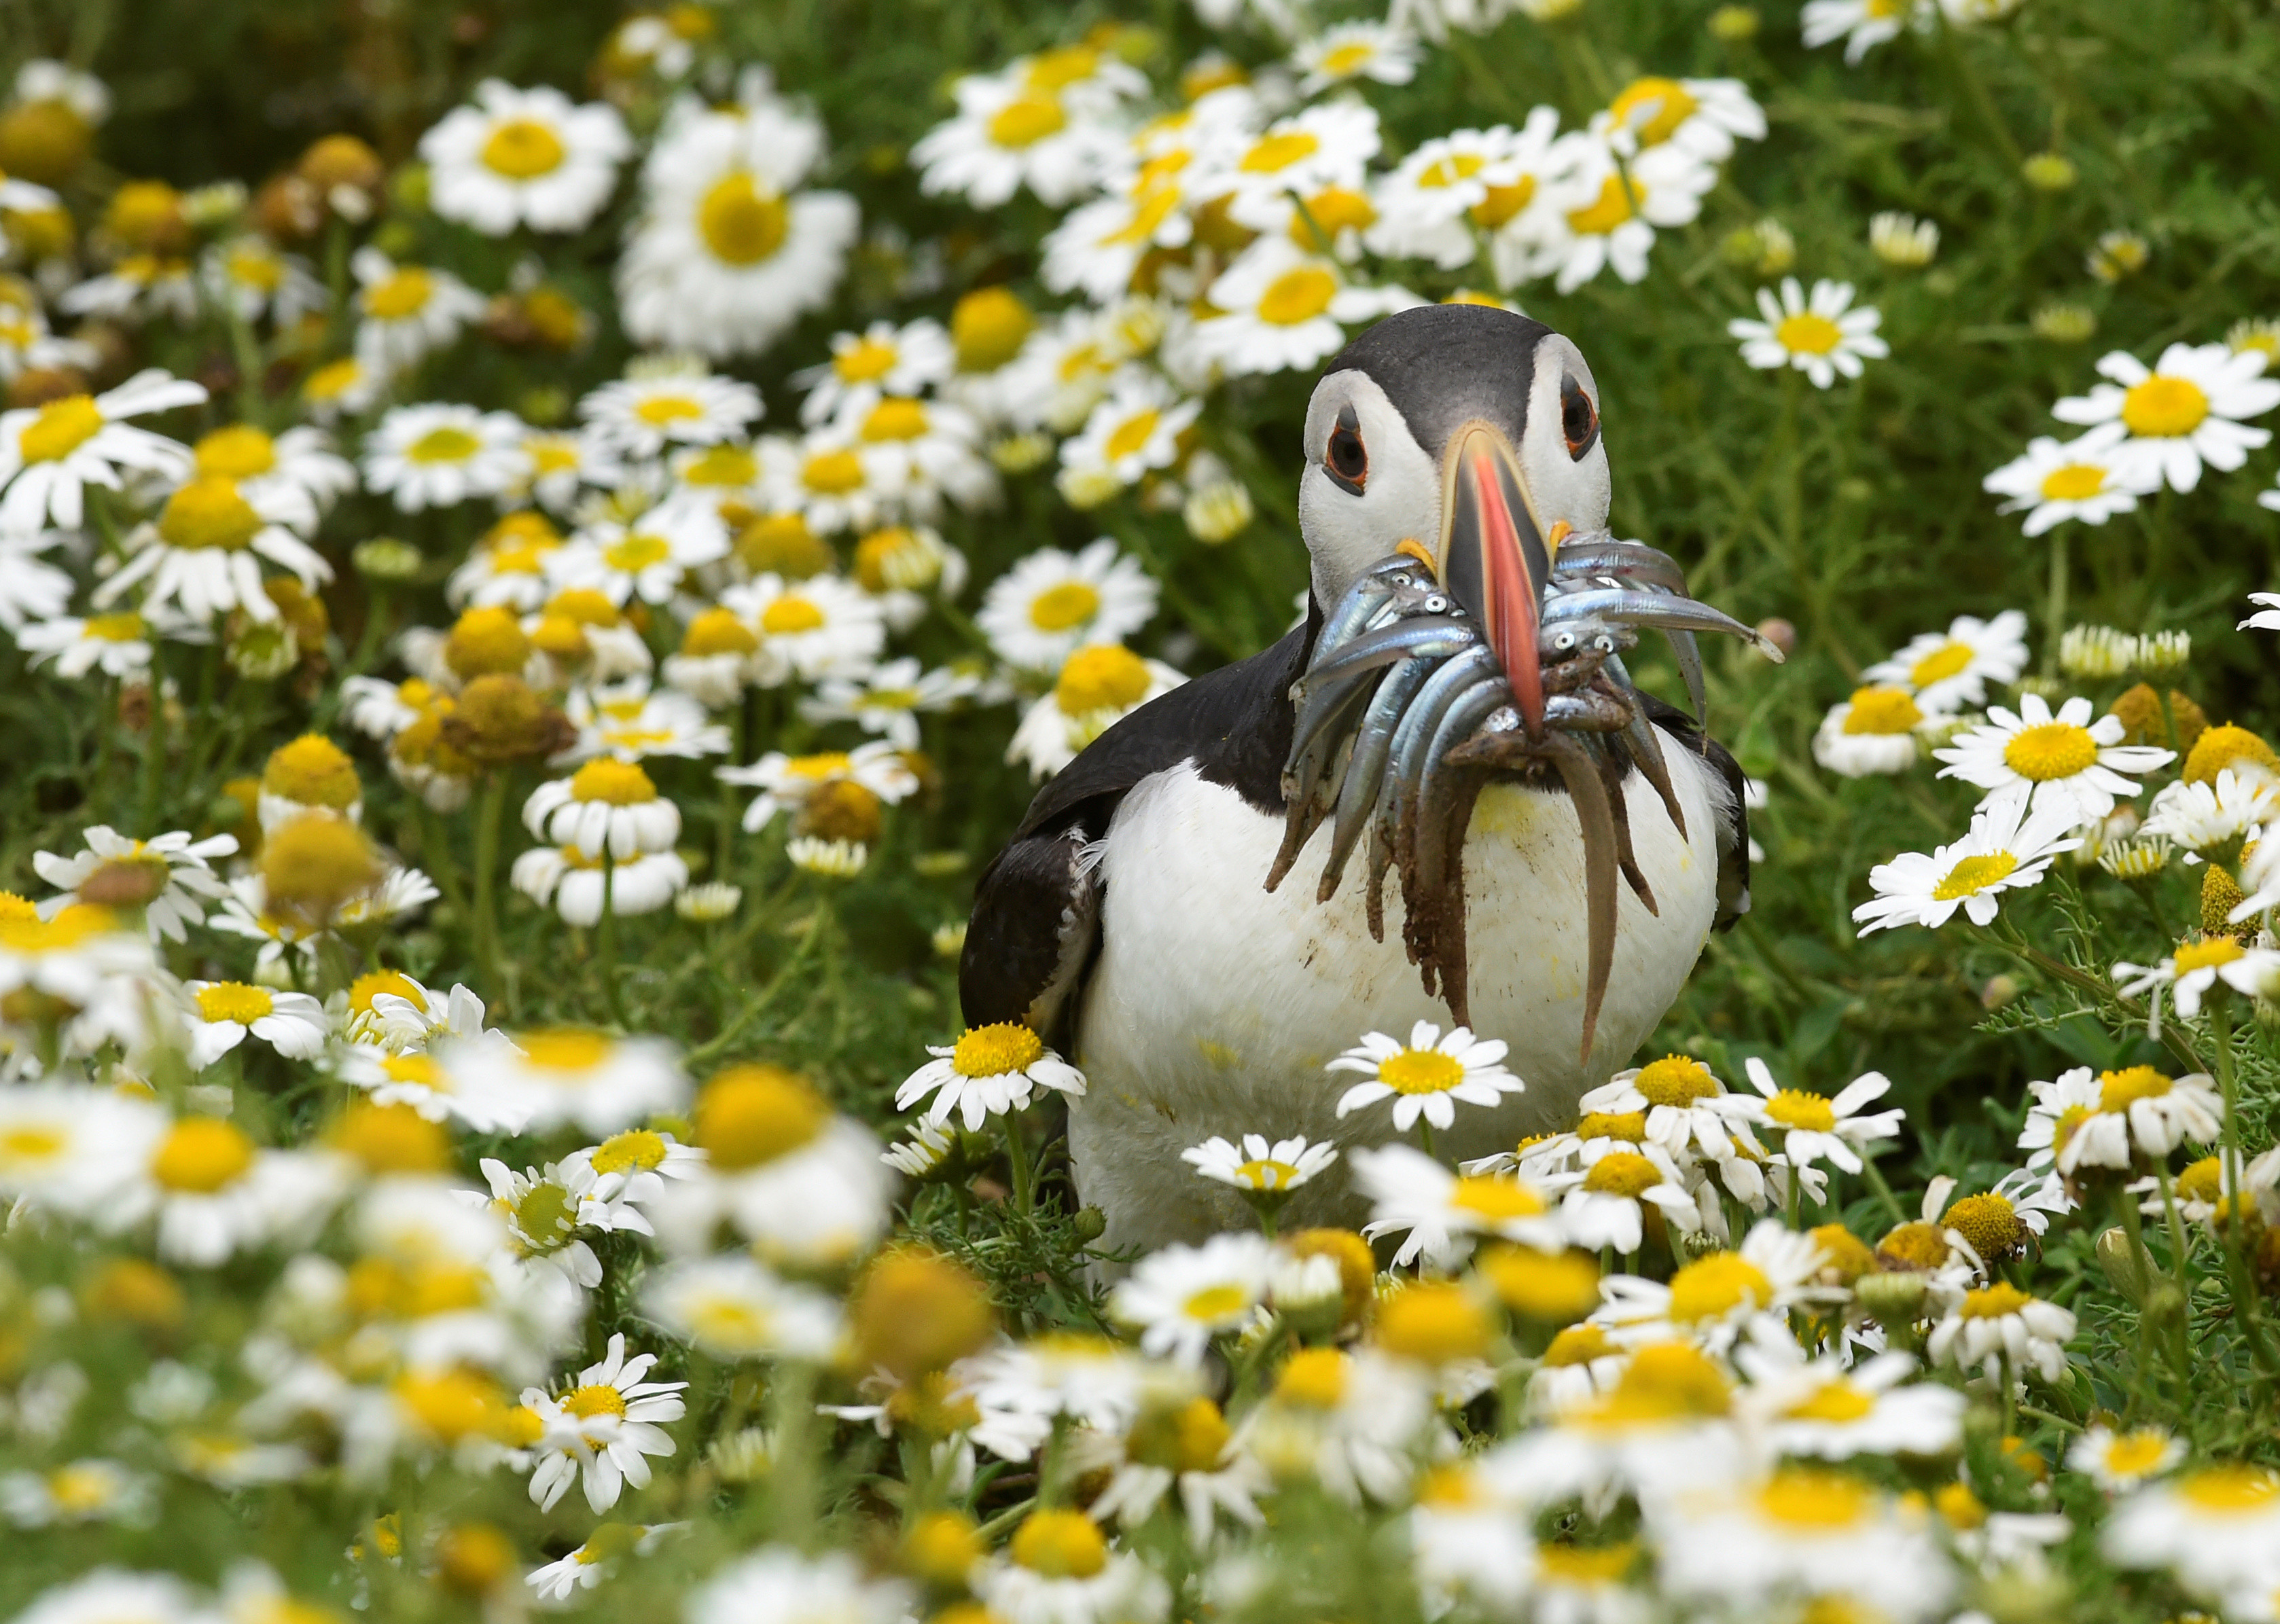 An Atlantic Puffin holds a mouthful of sand eels on the island of Skomer, off the coast of Pembrokeshire, Wales July 18, 2017. REUTERS/Rebecca Naden - RC16A9E6F220